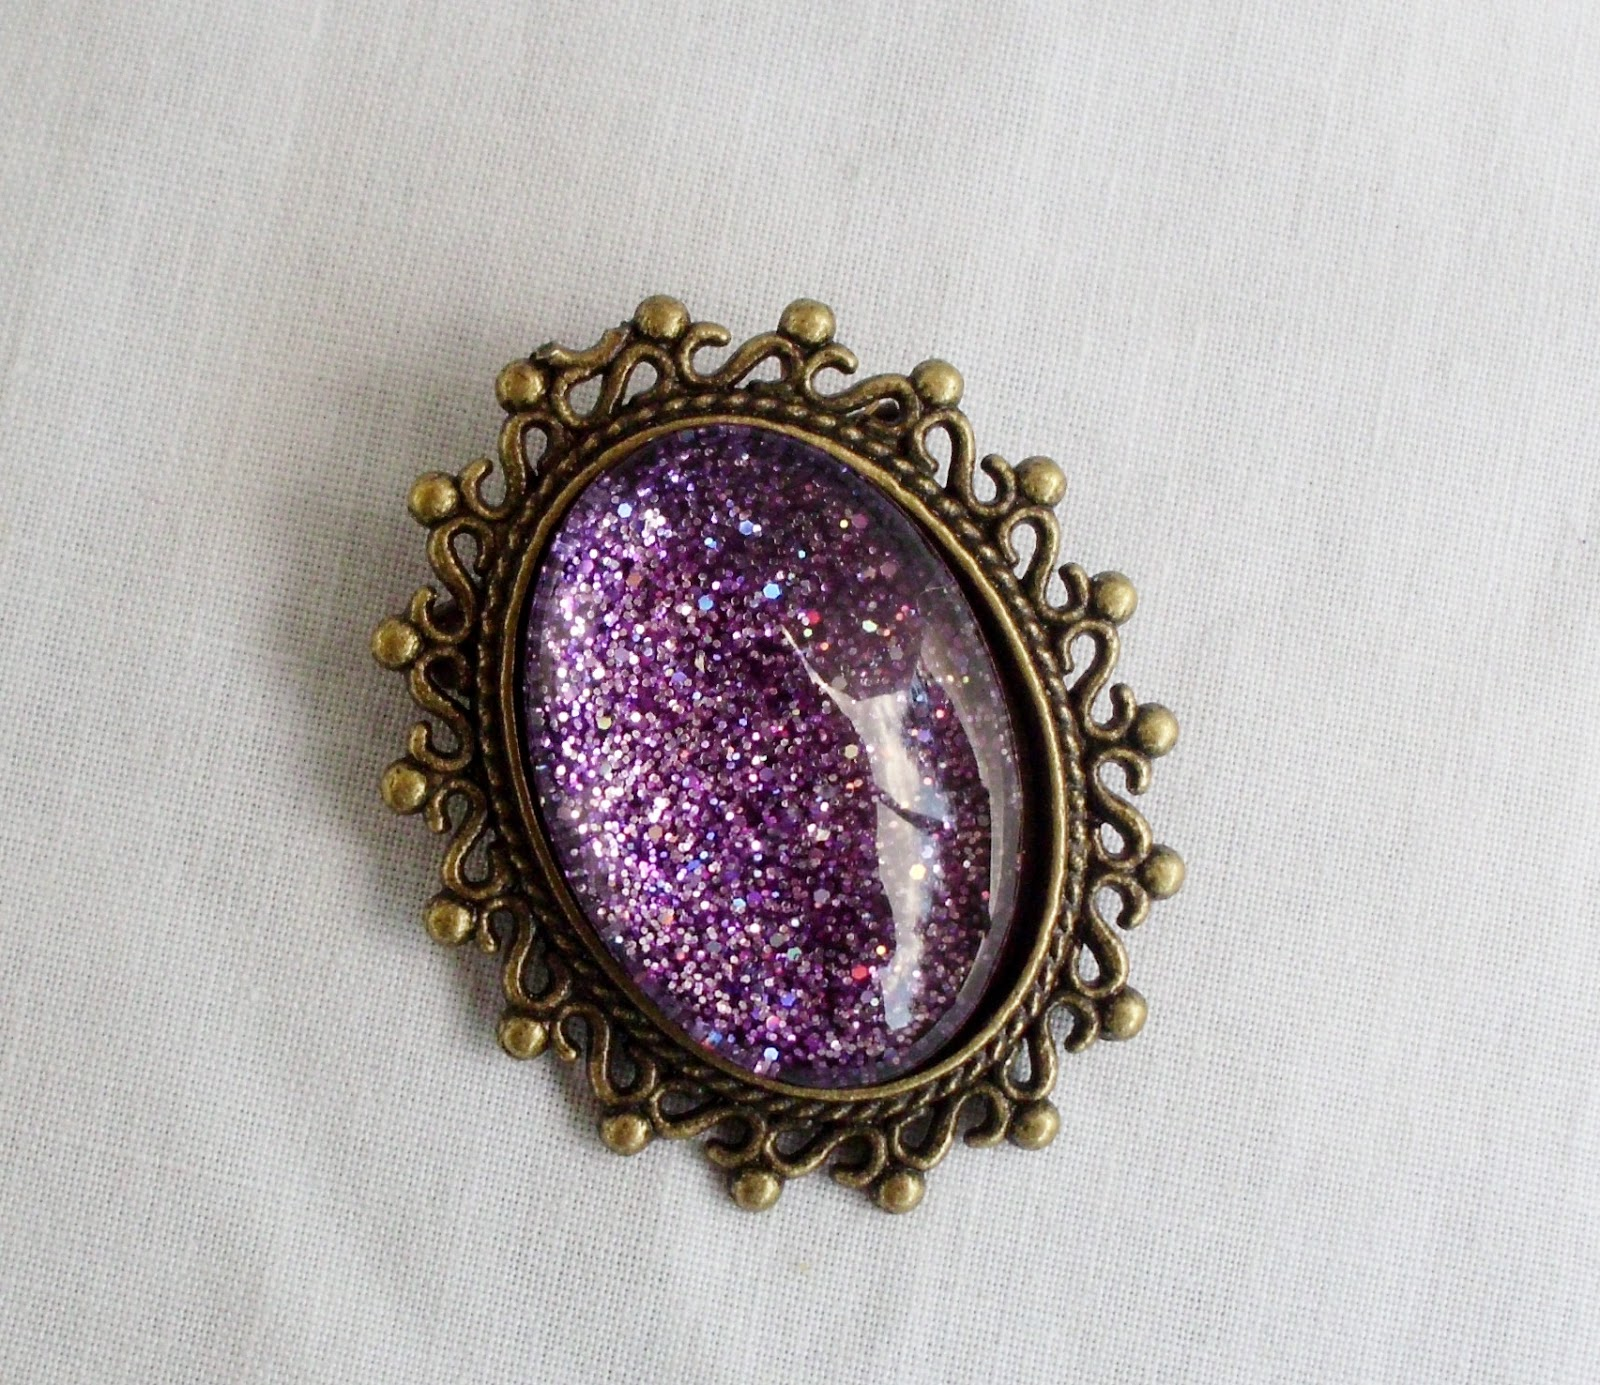 product brooch s img handcrafted jewelry designs palette artisans fused dichroic artisan umeboshi glass